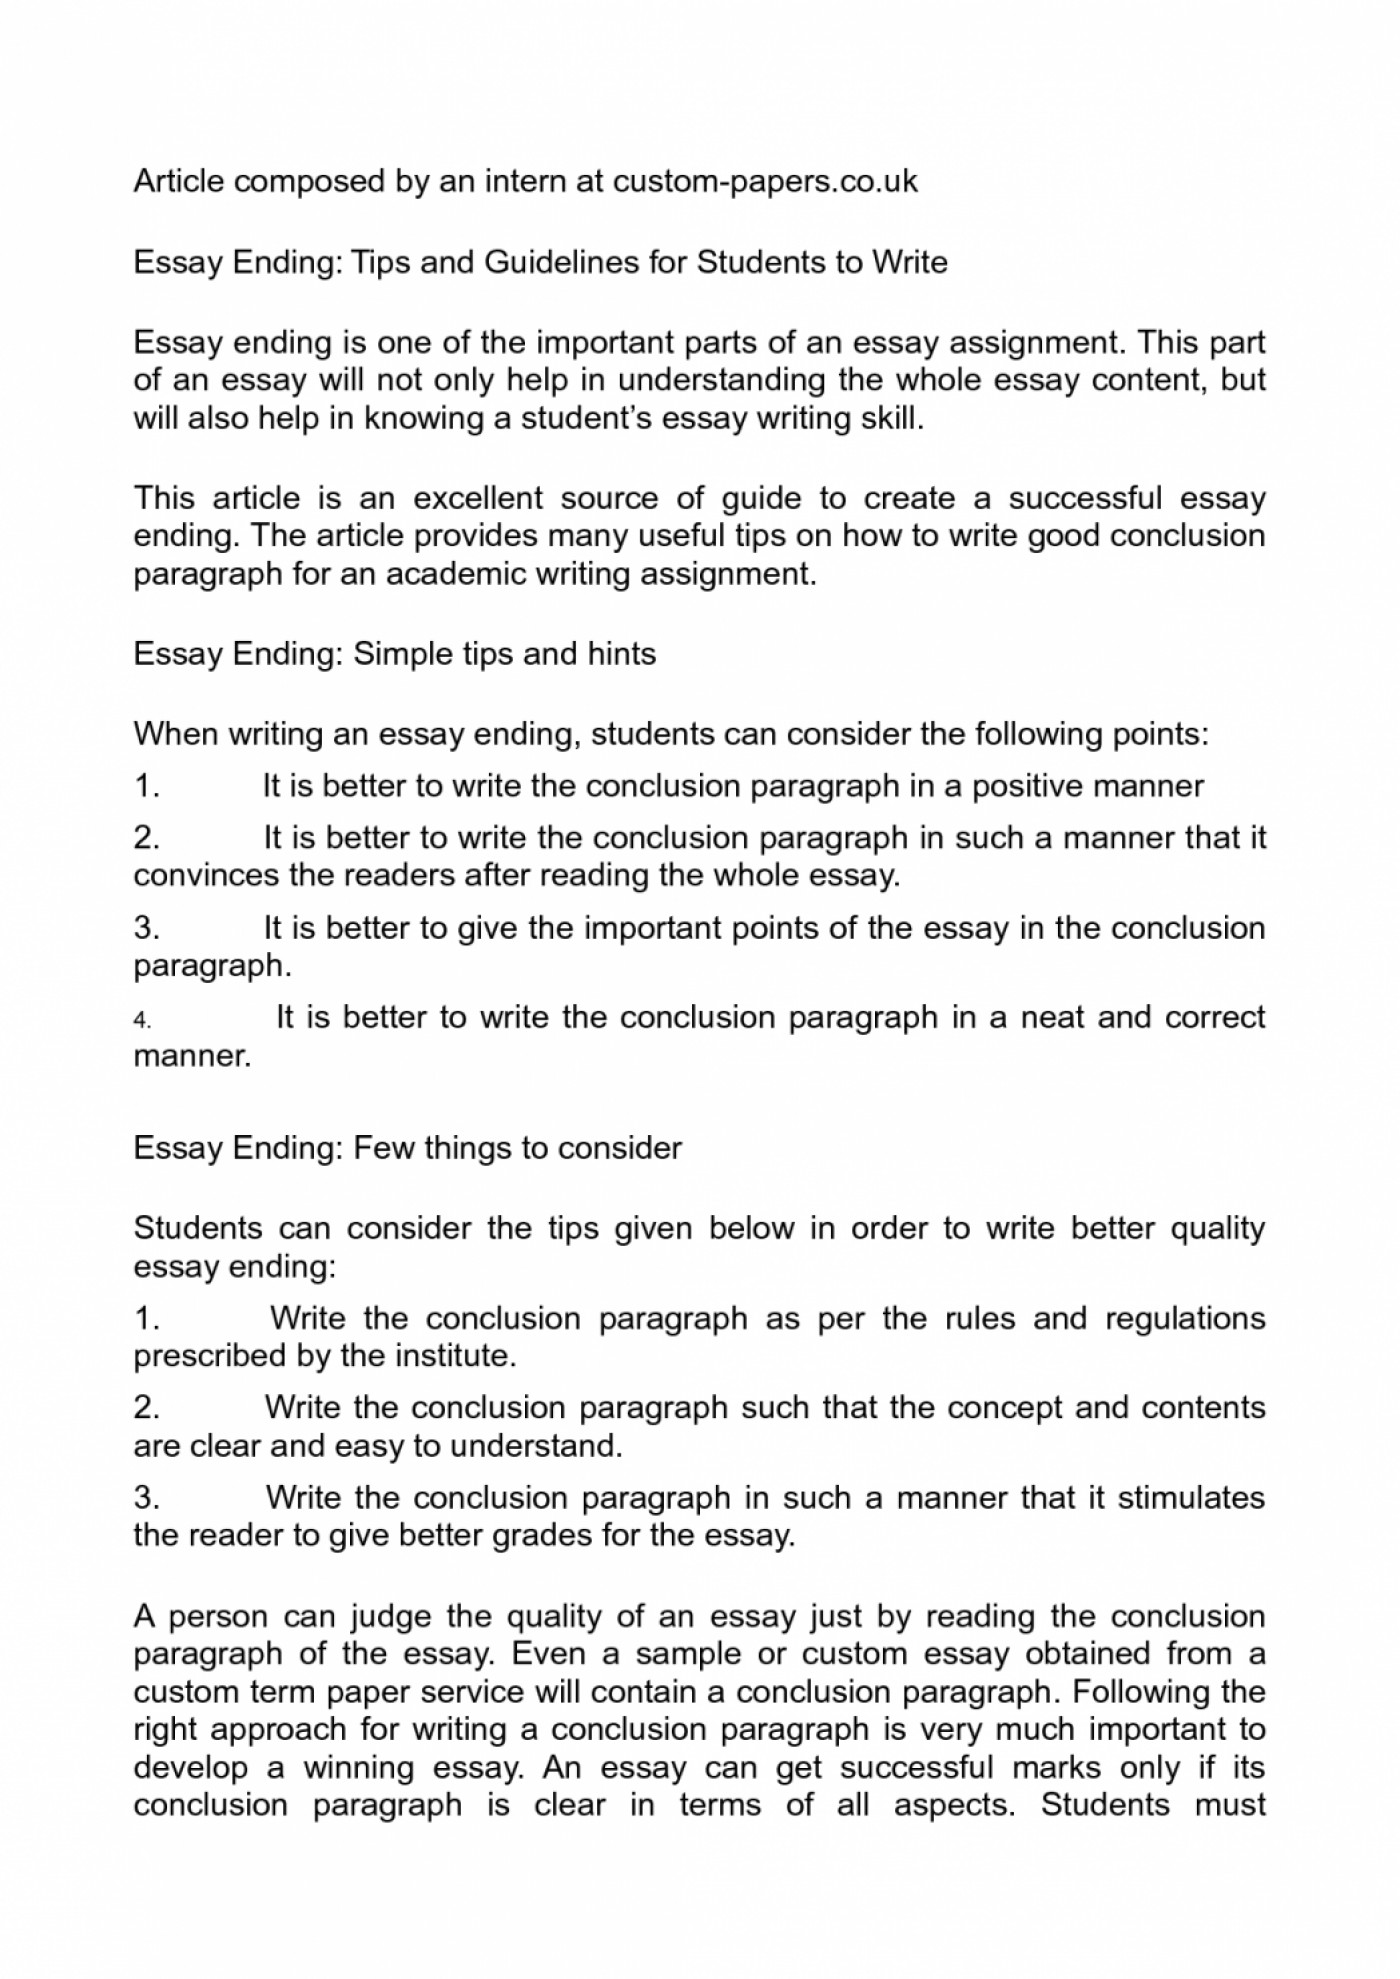 013 Good Ways To End An Essay Example Ending Is It Okay With Question Pzwnx My Wrong Outstanding Opinion Best Way Argumentative What Are Some 1400